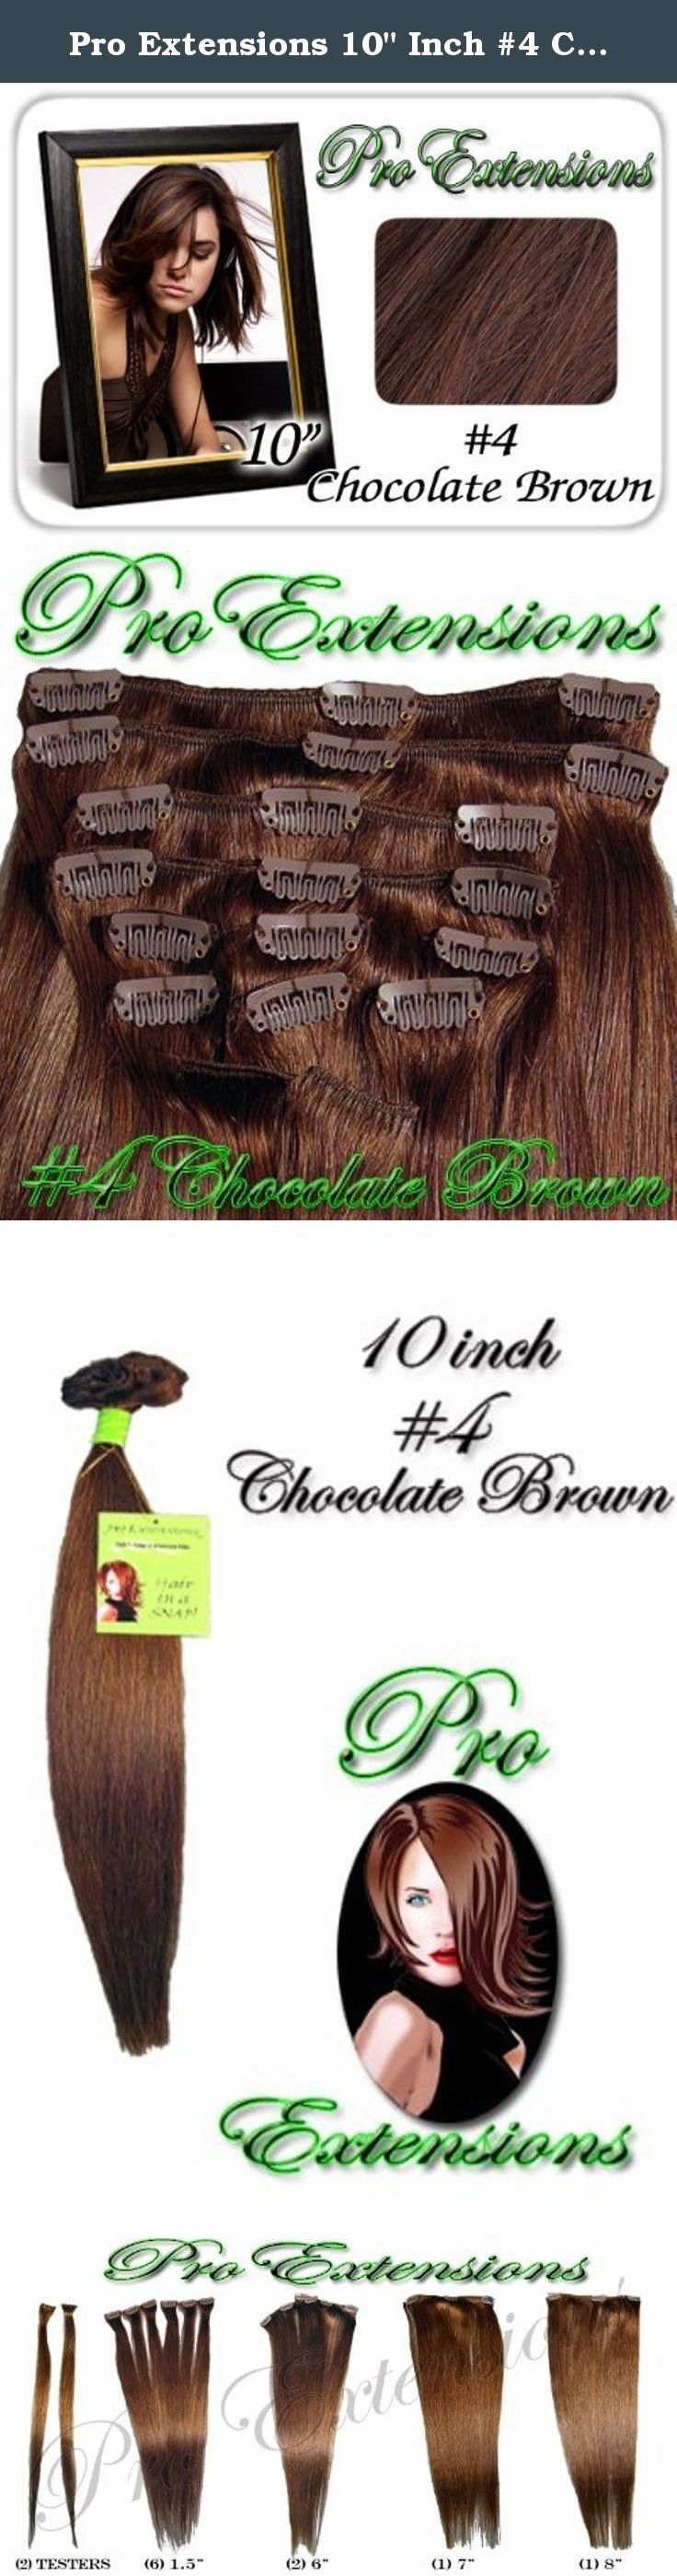 """Pro Extensions 10"""" Inch #4 Chocolate Brown 100% Real Human Clip in Hair Extensions. This Pro Extensions clip in hair extension set is Colored #4, CHOCOLATE BROWN. Pro Extensions are 100% human hair extensions. This set of hair extensions is 10"""" long and 39"""" wide. This hair extensions set is Grade A, Color #4, CHOCOLATE BROWN. The set weight is 50 grams. This set of extensions is straight without any body wave. Pro Extensions Volumizer is specialized to add volume or texture to your…"""